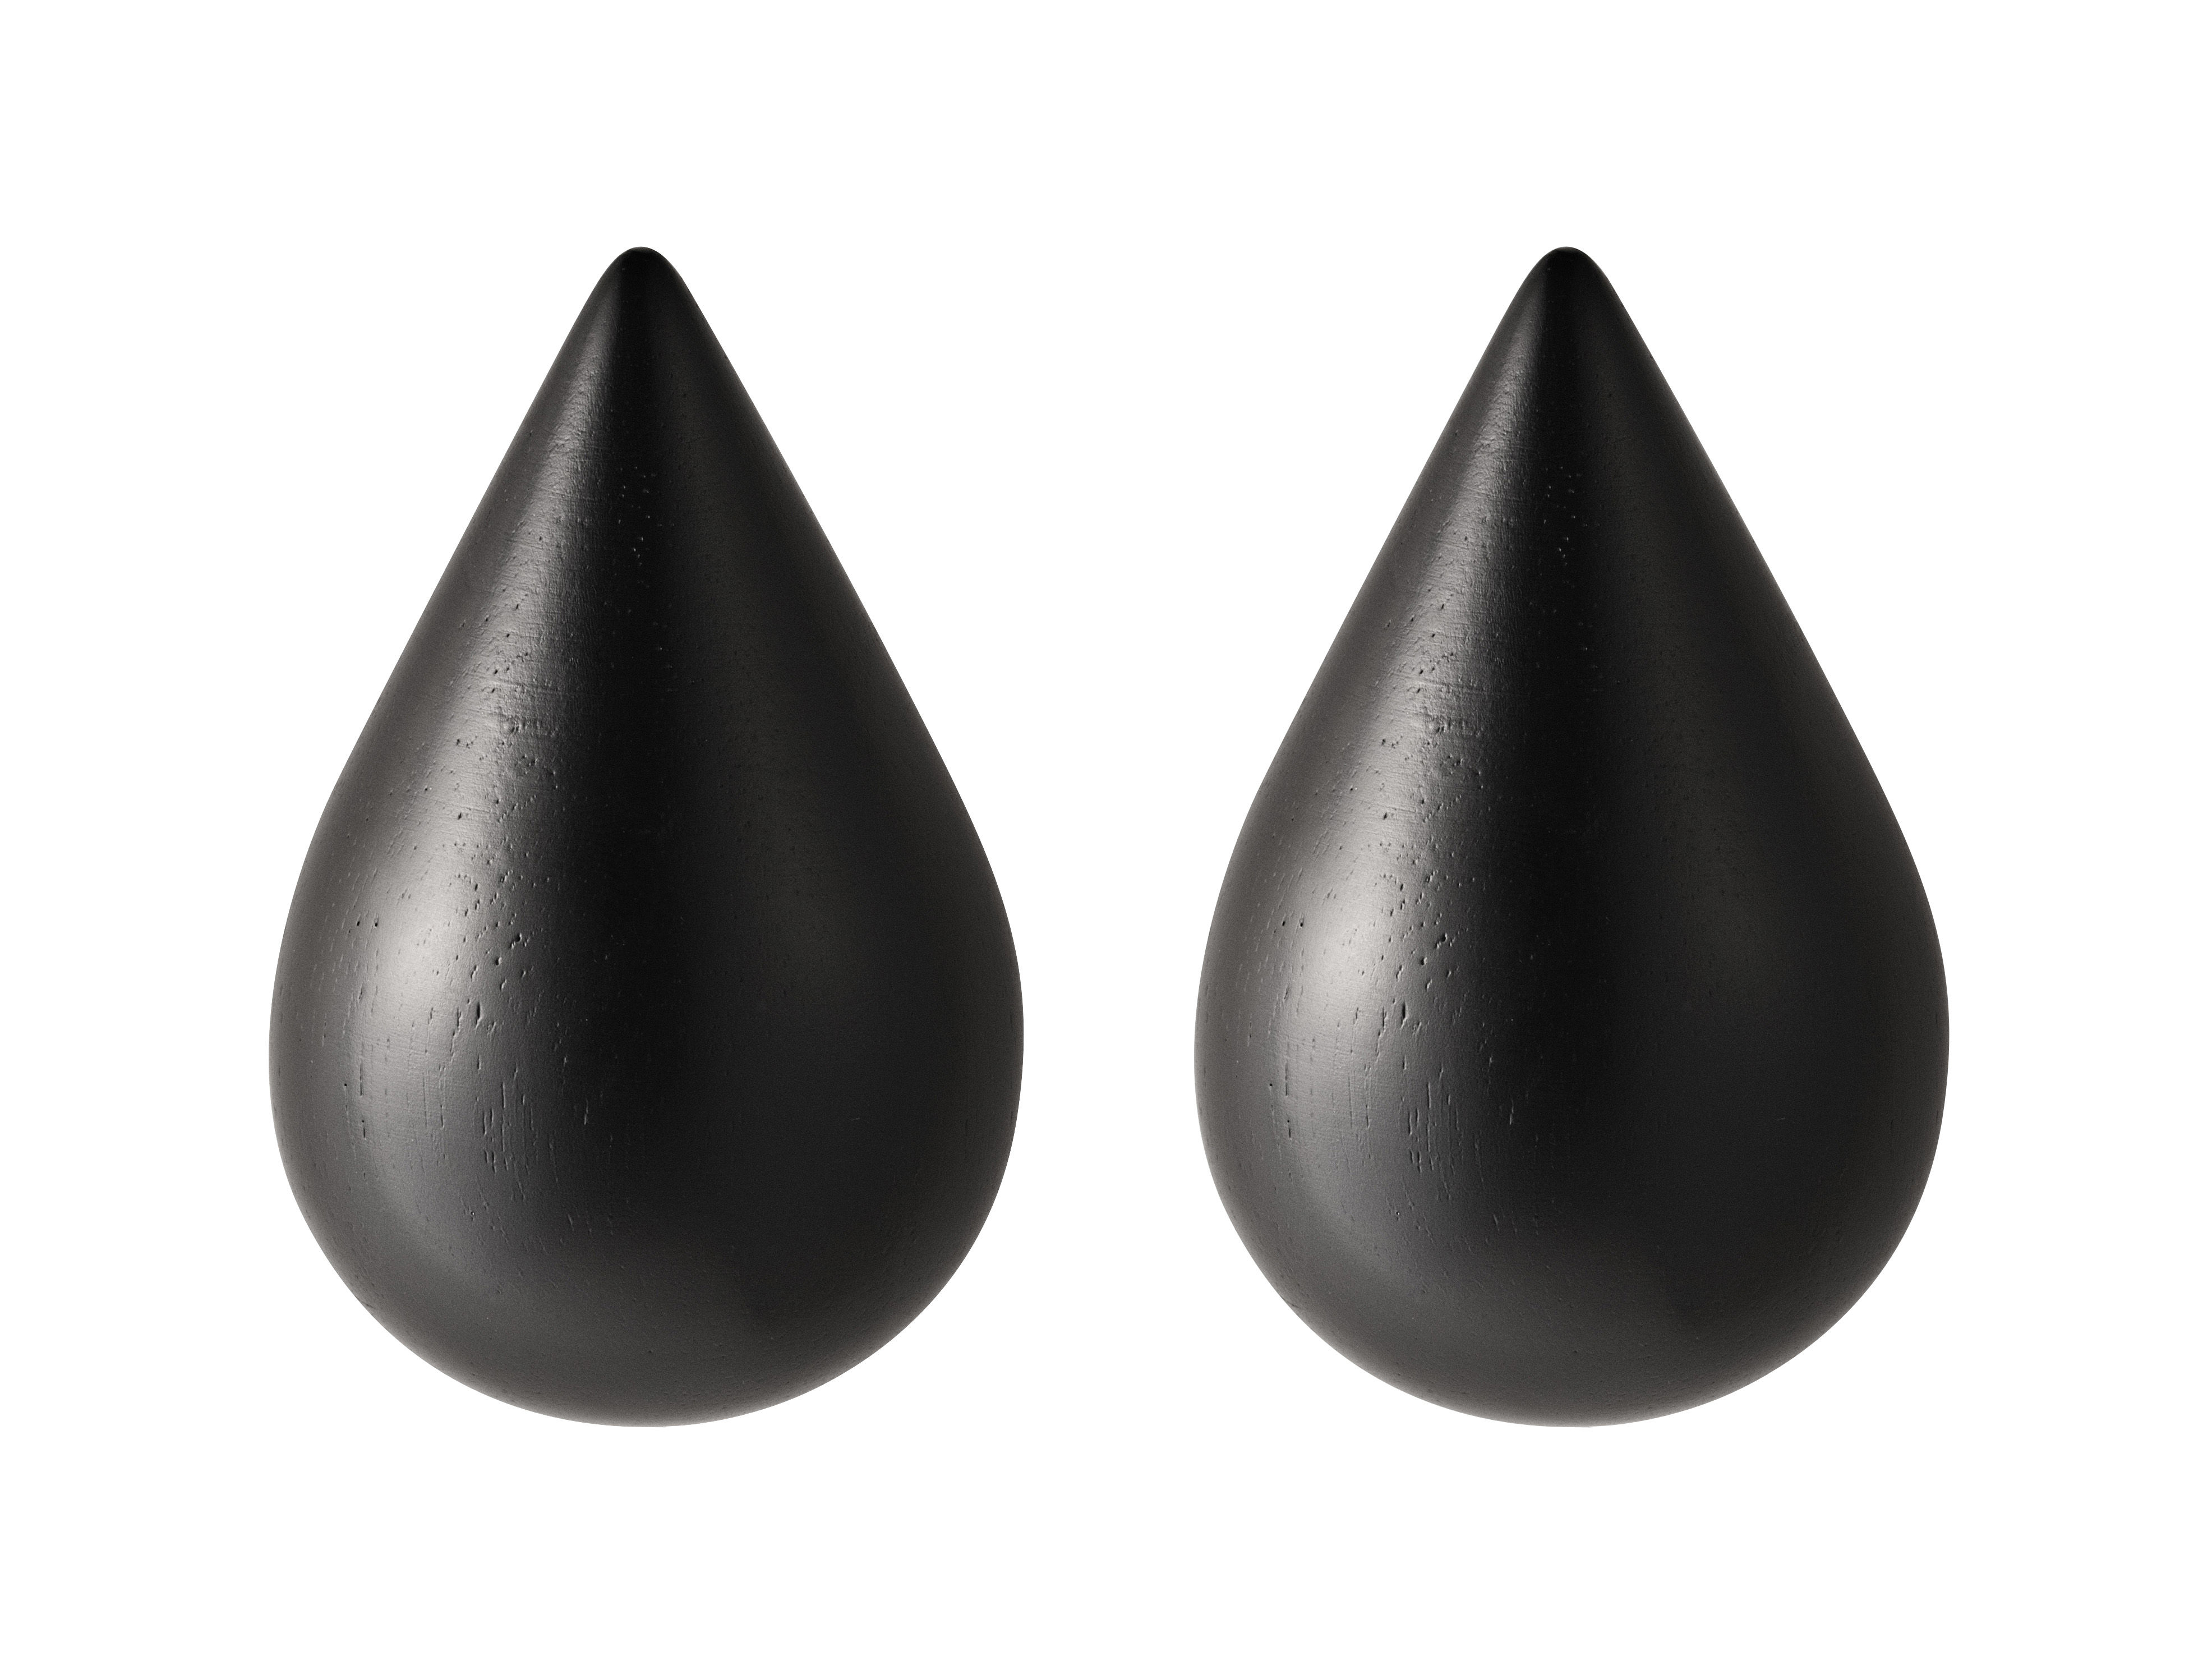 Furniture - Coat Racks & Pegs - Dropit Small Hook - pack of 2 - H 7.7 cm by Normann Copenhagen - Black - Small / H 7.7 cm - Painted wood